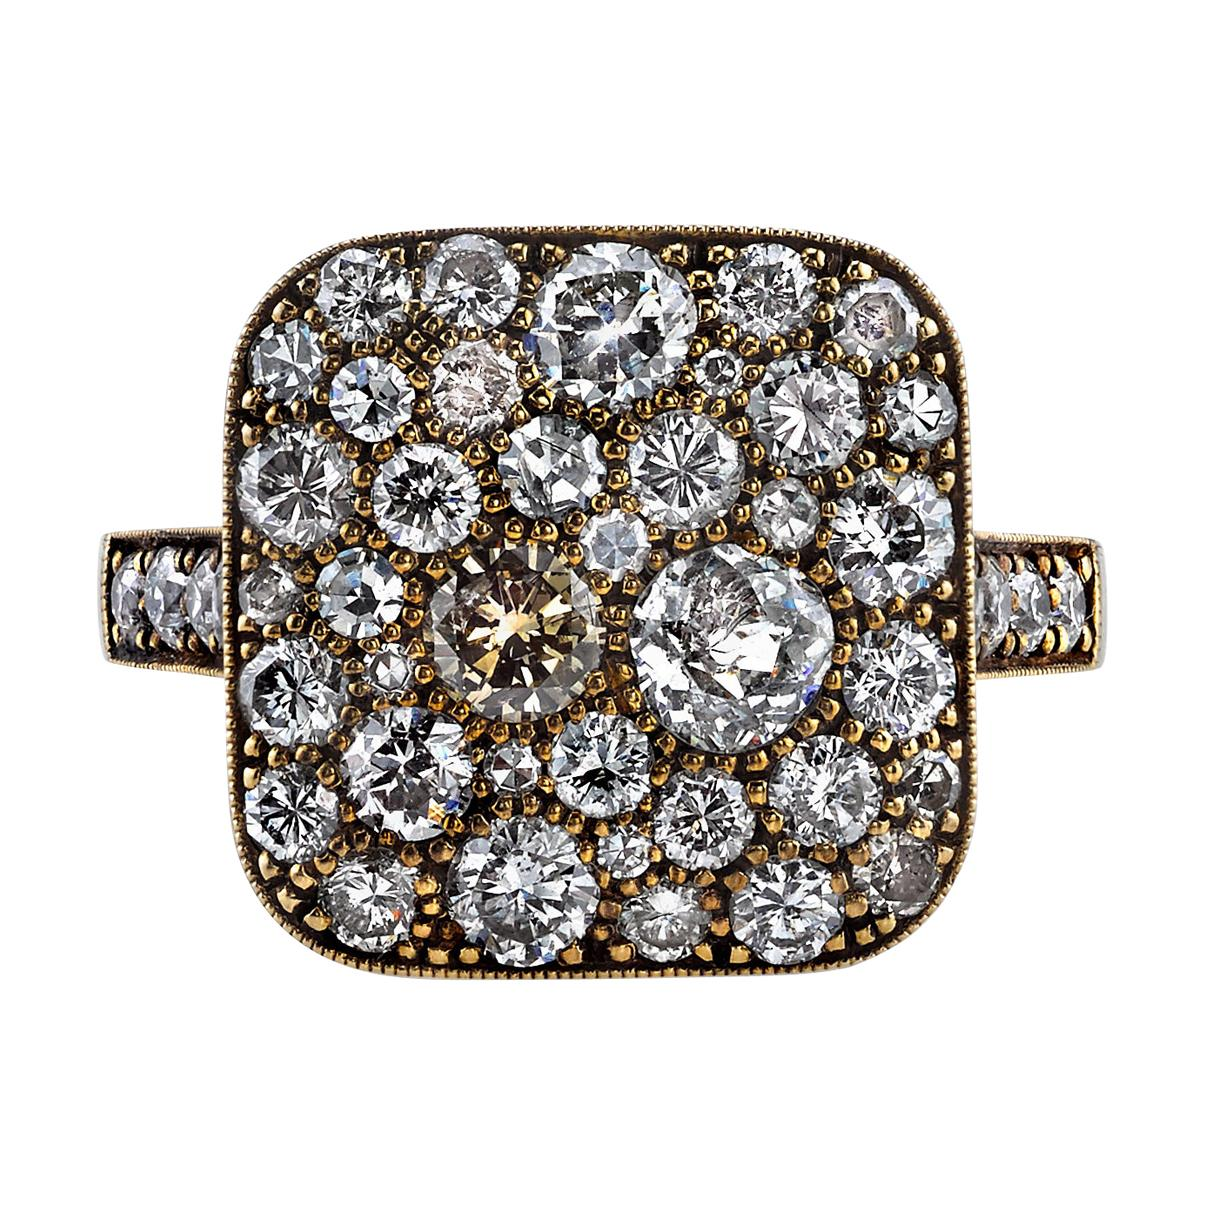 Approx. 2.30 Carat Mixed Cut Diamonds Set in a Handcrafted 18K Yellow Gold Ring